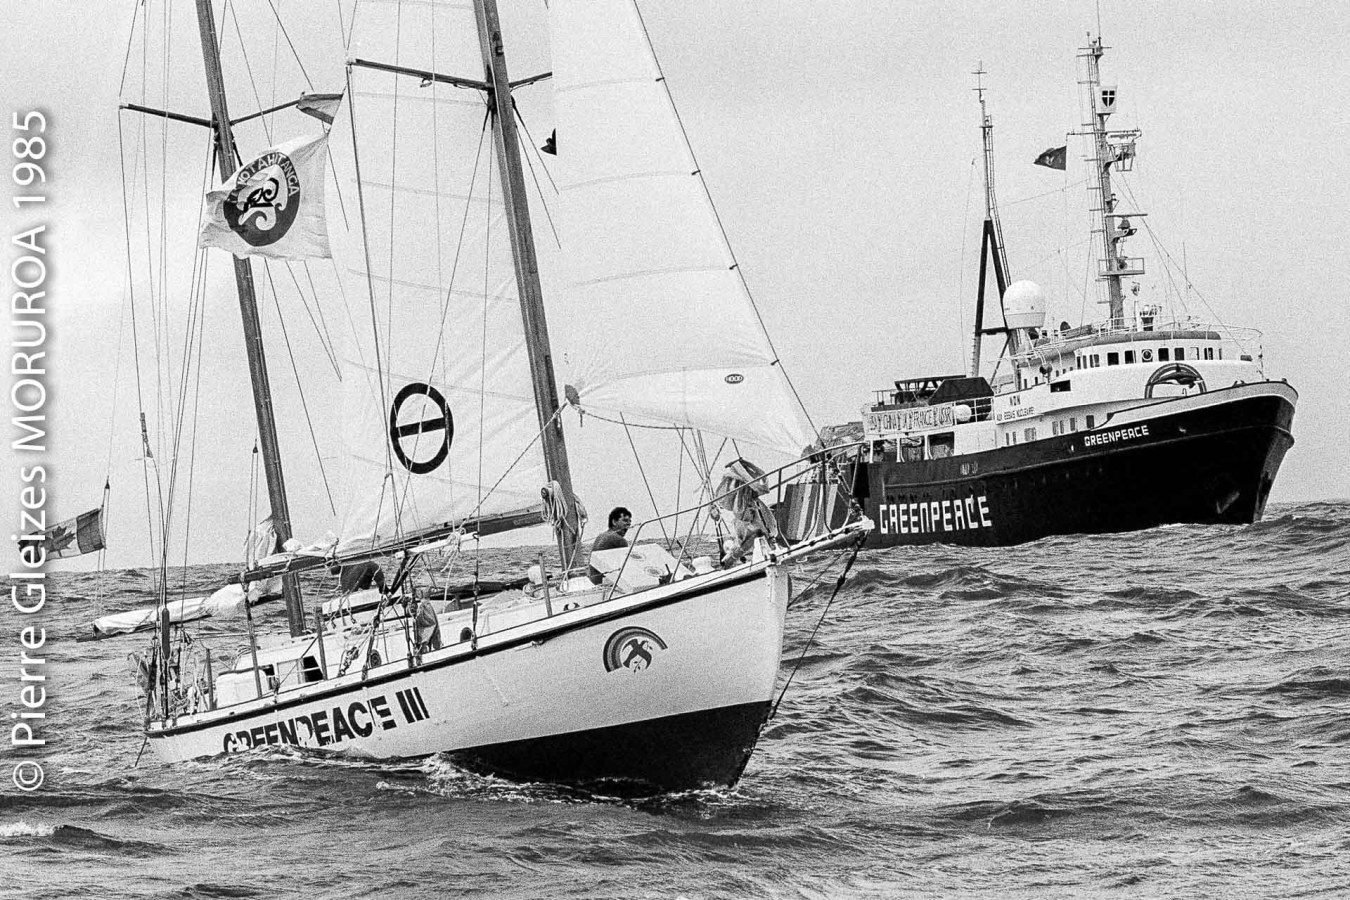 The Vega, left, and the M.V. Greenpeace meet off the atoll of Mururoa to protest French nuclear testing in the South Pacific, Oct. 4, 1985. The Vega, with a crew of 5 from 4 different countries, has been at sea 42 days since leaving New Zealand. The Greenpeace left Amsterdam Aug. 19, replacing the Rainbow Warrior which was sunk by French Secret Service. (AP Photo/Pierre Gleizes)